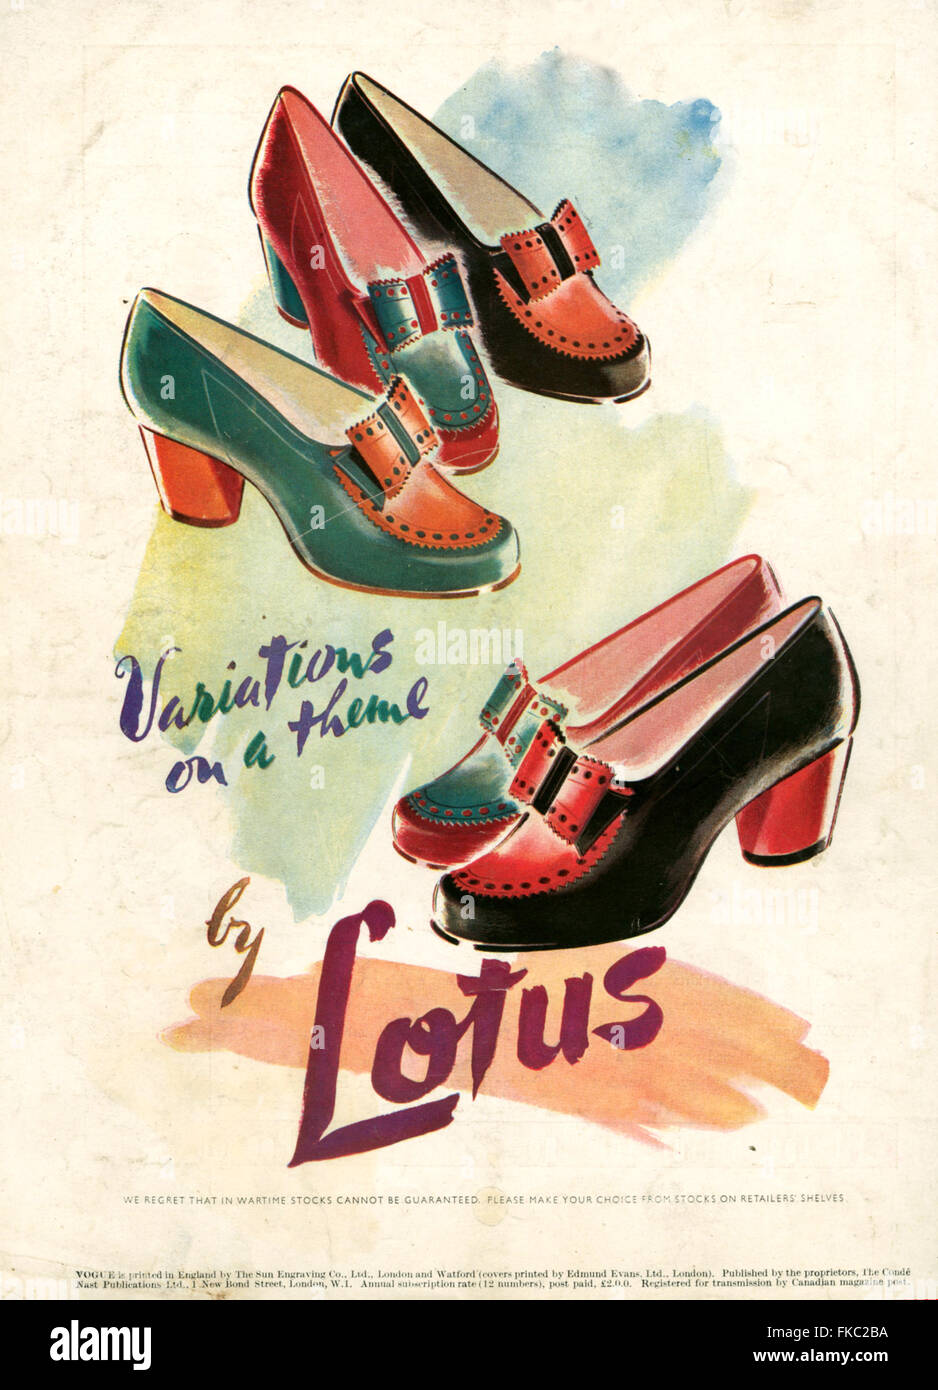 1940s UK Lotus Ltd Magazine Advert - Stock Image